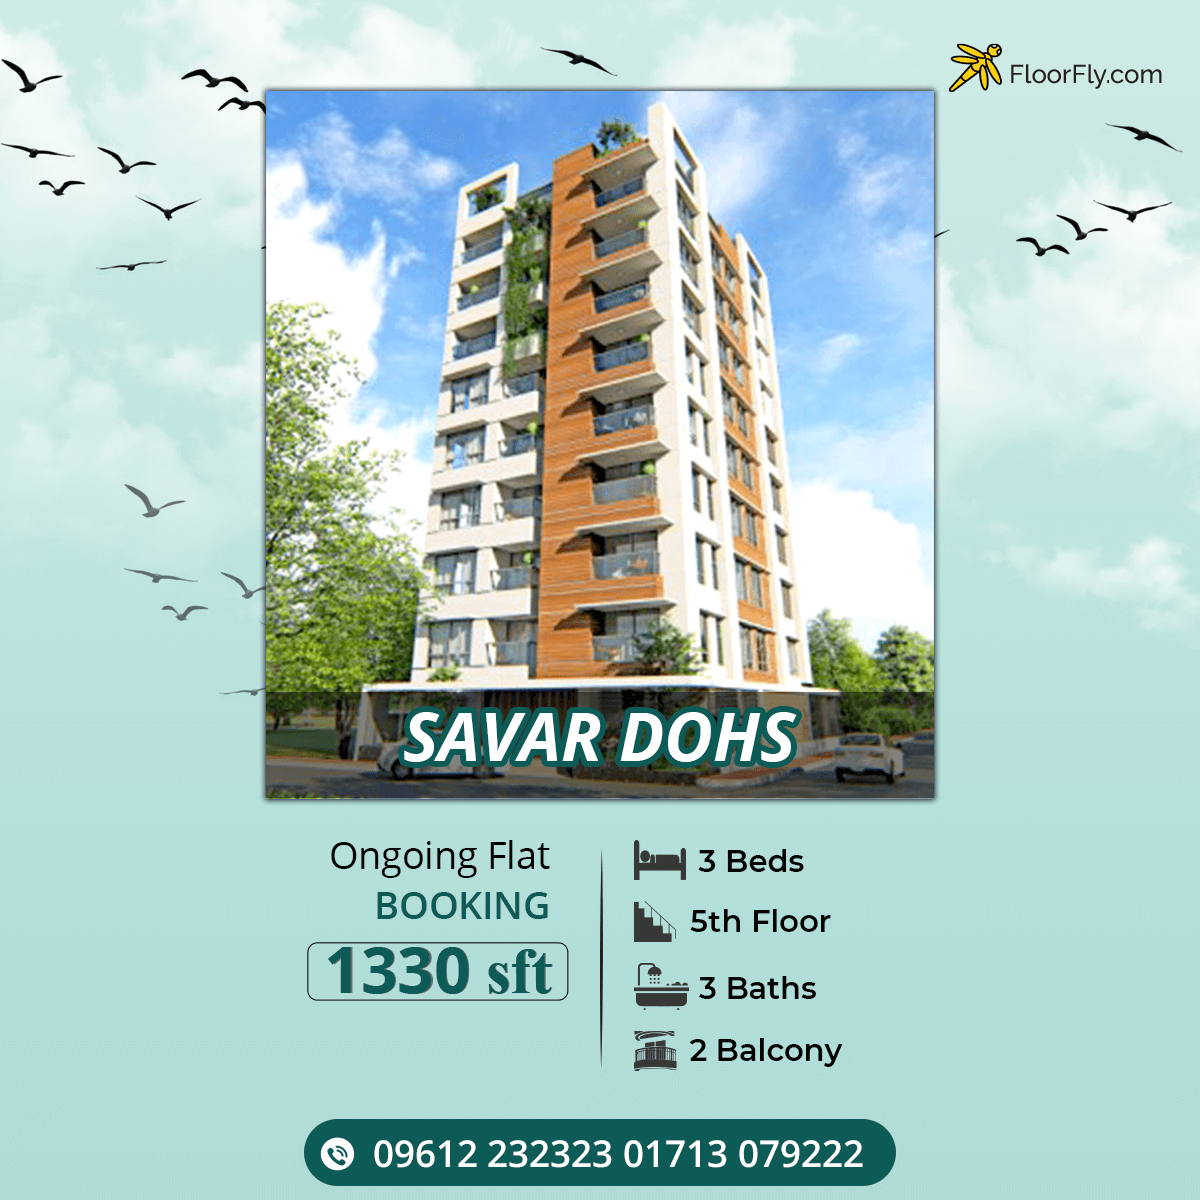 Exclusive 1330 sft Flat For Sale at DOHS, Savar